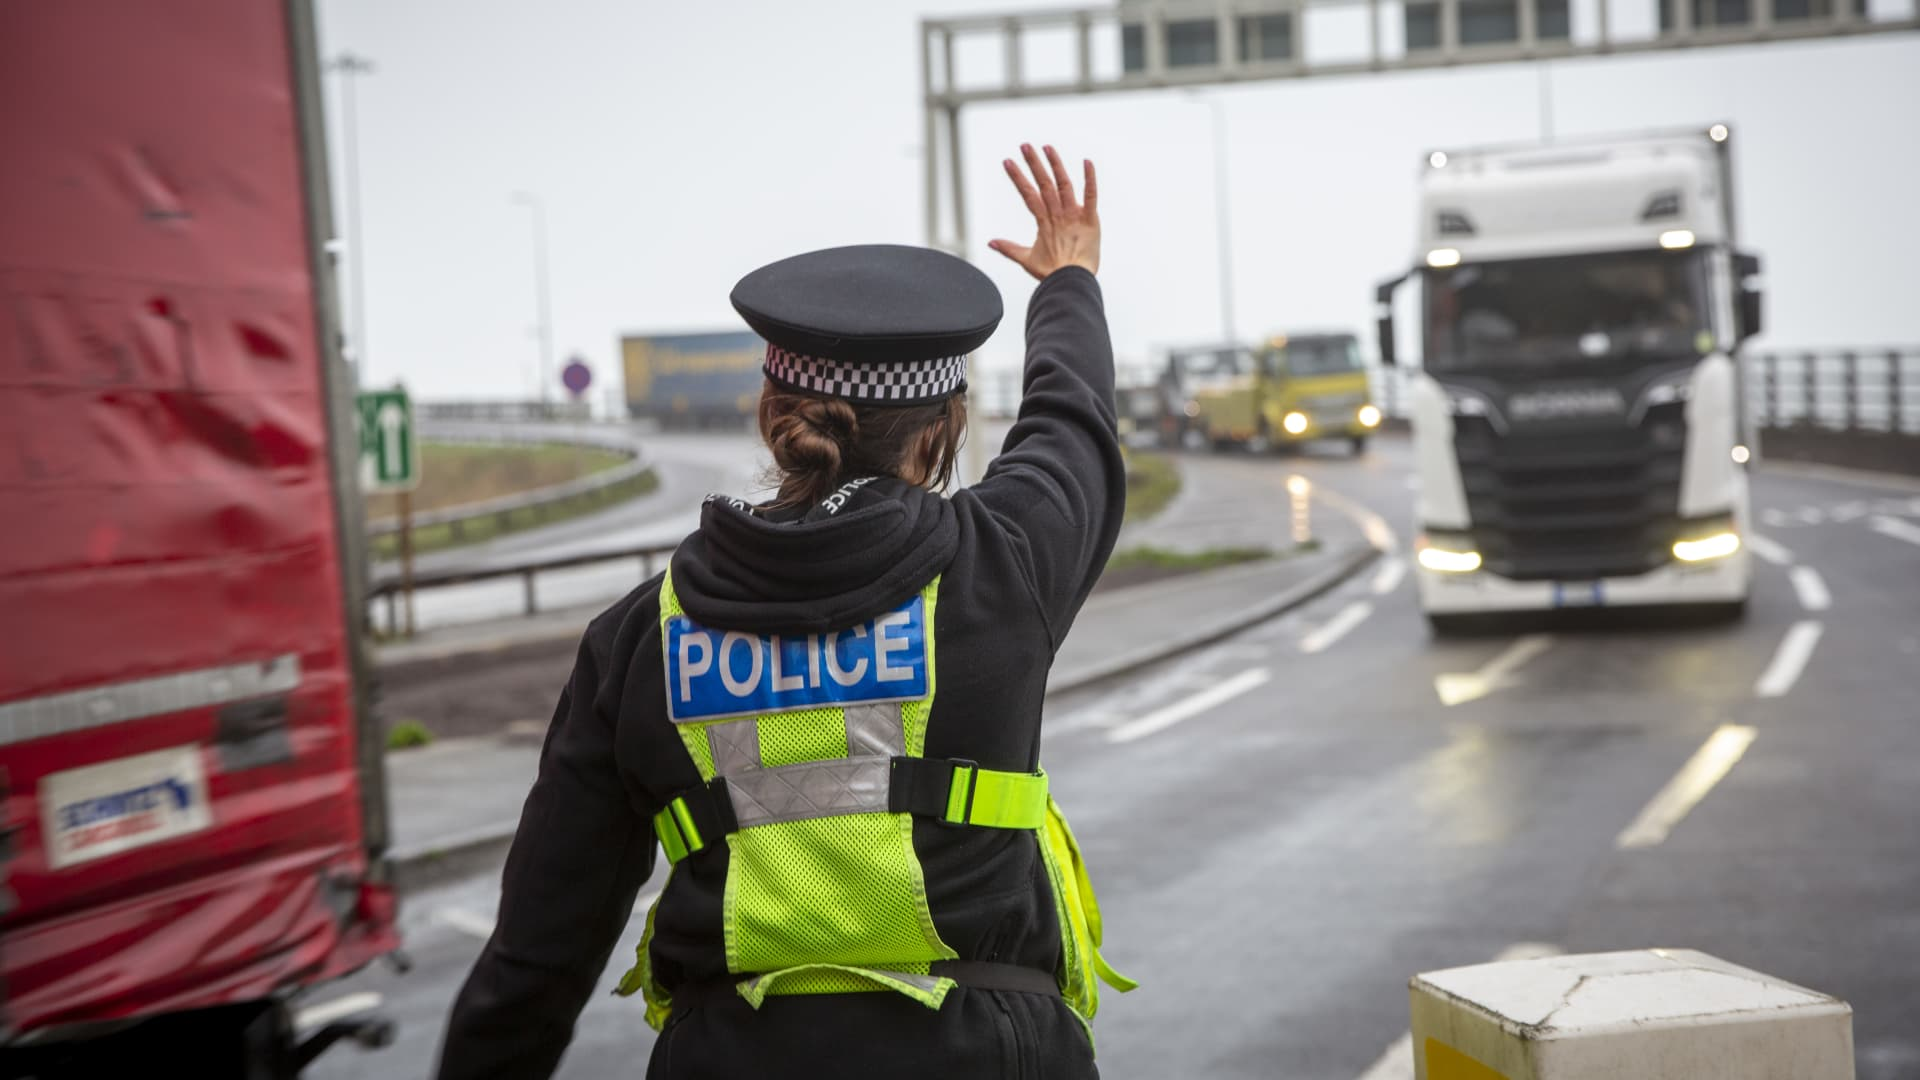 Police manage freight lorry drivers as the French border closures due to a new strain of COVID-19 at the entrance into the port of Dover in the Eastern Dock where the cross channel port is situated with ferries departing to go to Calais in France on the 21st of December 2020, Dover, Kent, United Kingdom.